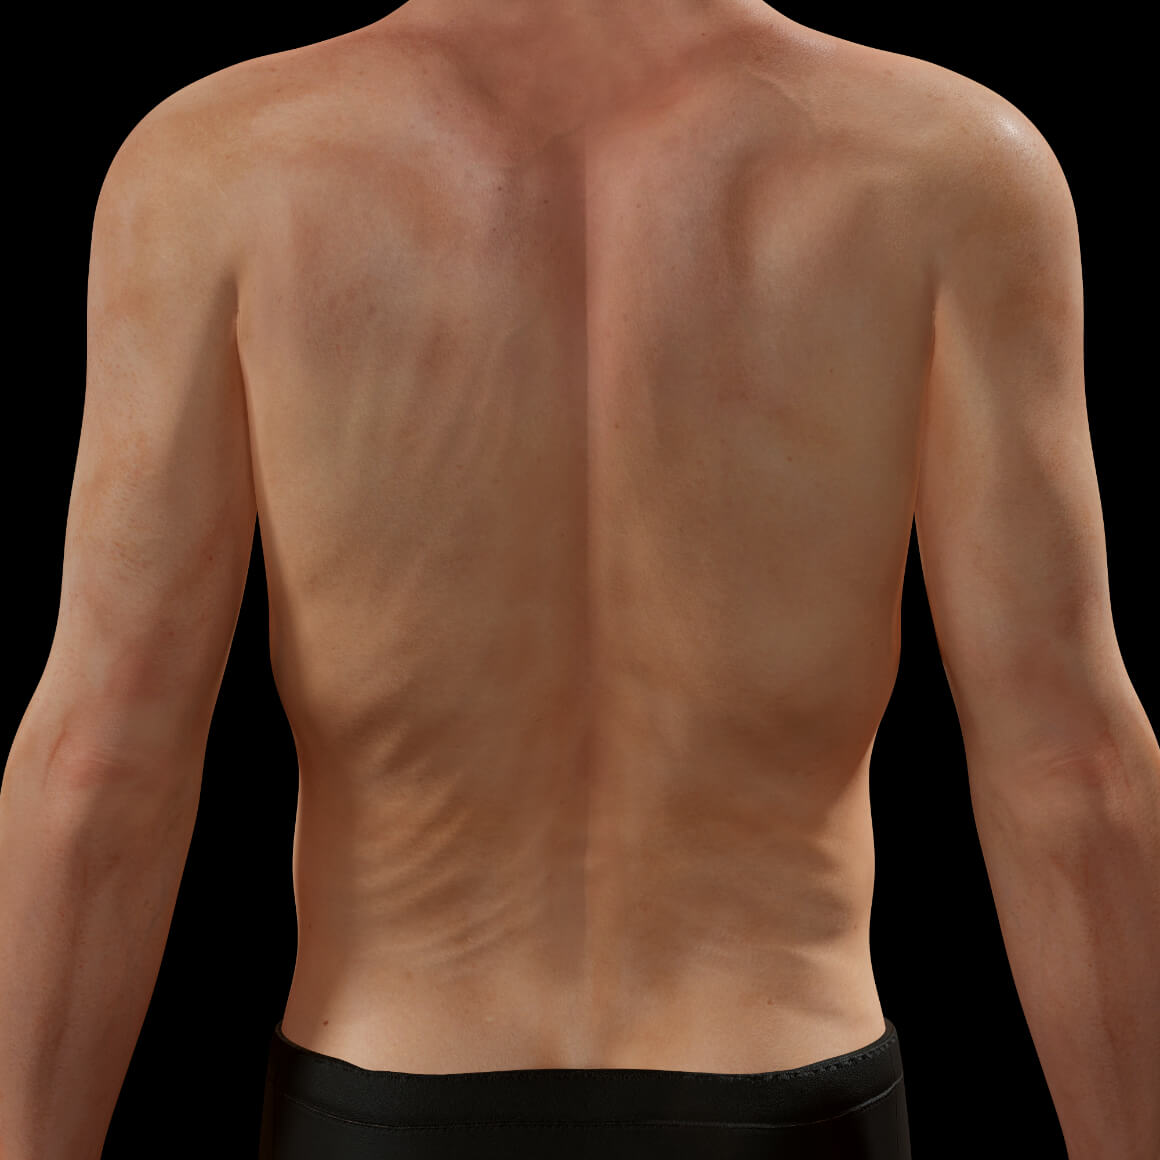 Back of a Clinique Chloé patient after Venus Legacy radiofrequency treatments for body skin tightening